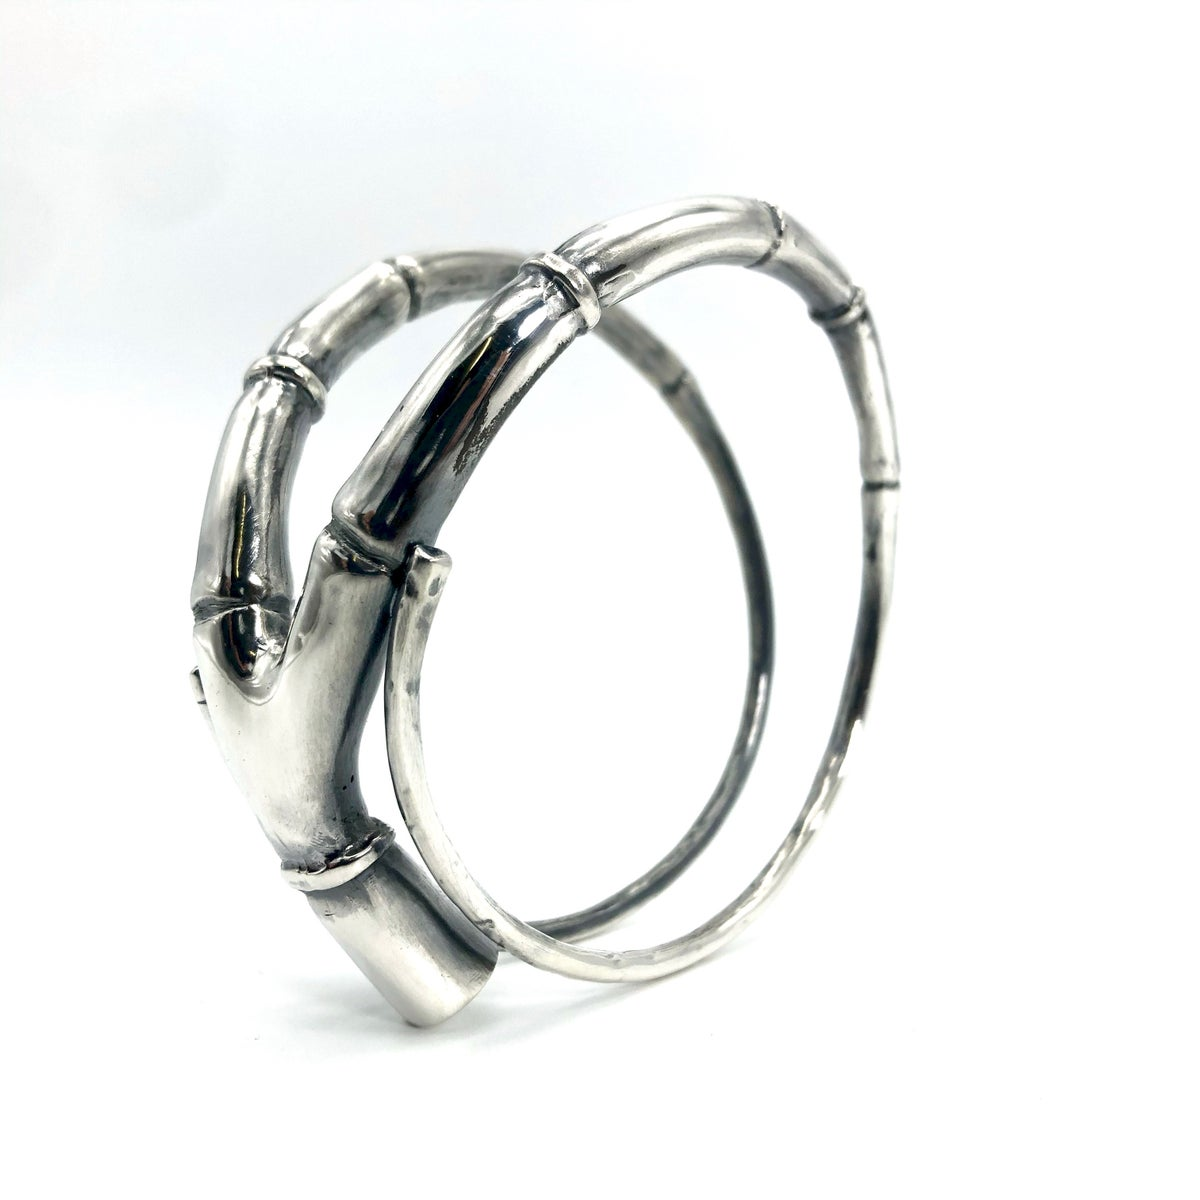 Image of Silver Branch Tendril Bangle Bracelet 02